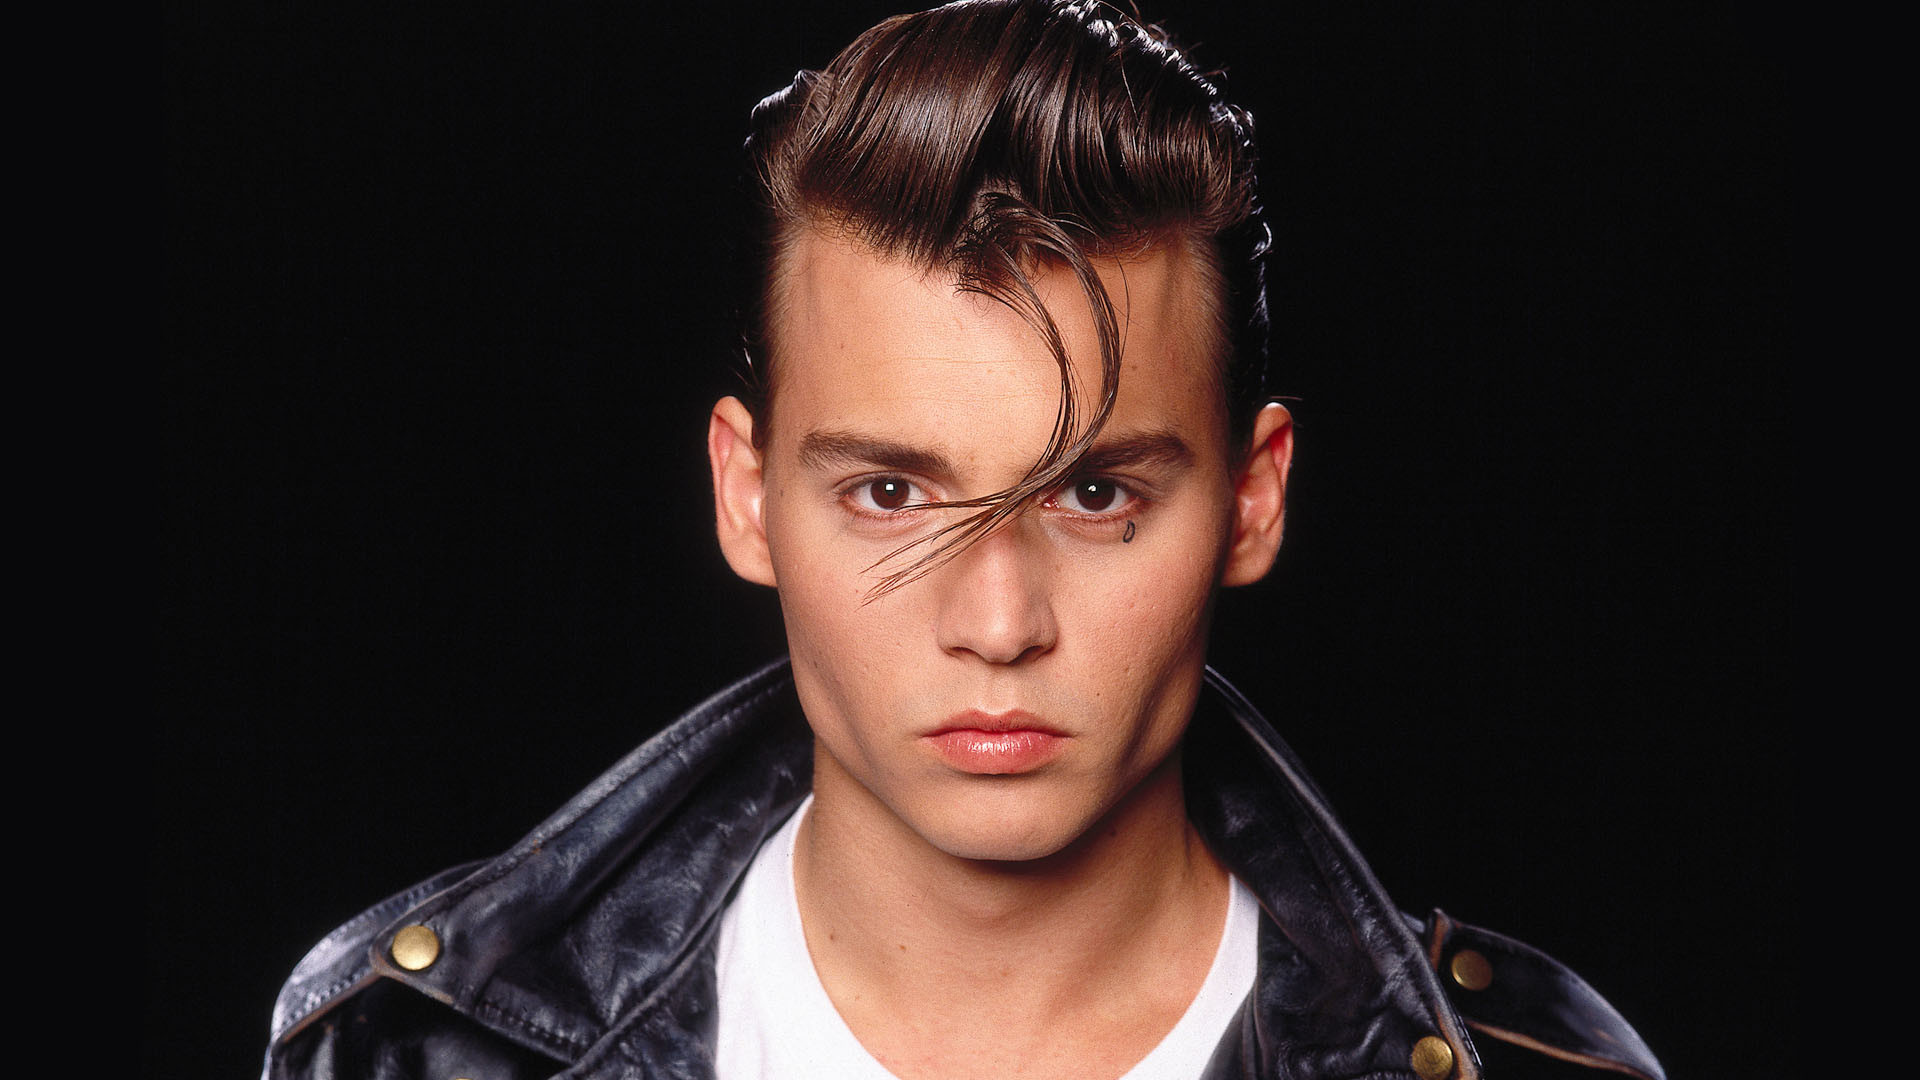 Young Johnny Depp   Wallpaper High Definition High 1920x1080